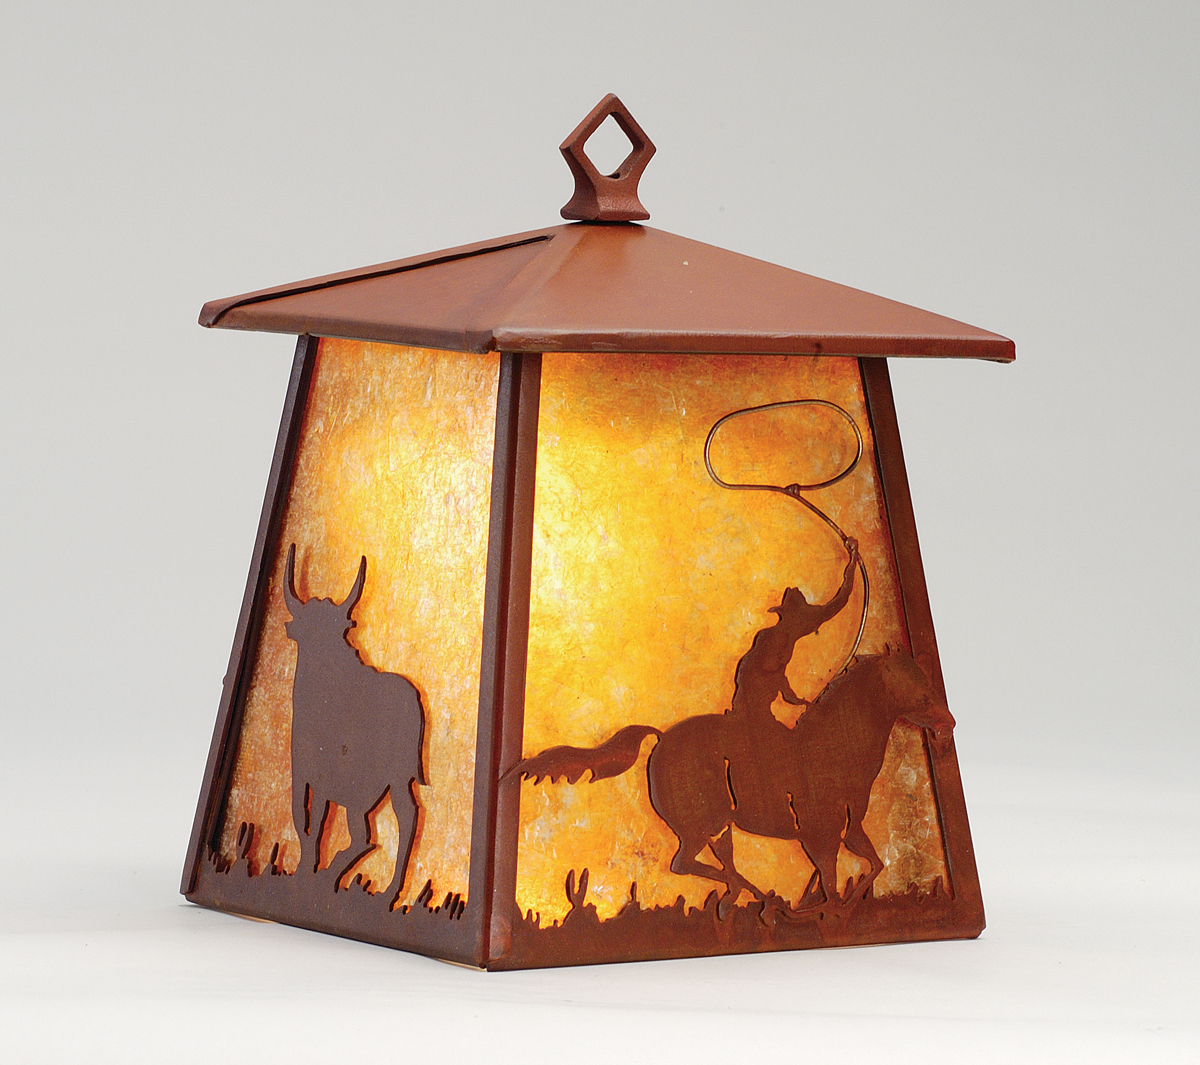 Rustic Cabin Wall Sconces : Meyda Tiffany (82663) 7.5 Inch Width Cowboy & Steer Hanging Wall Sconce